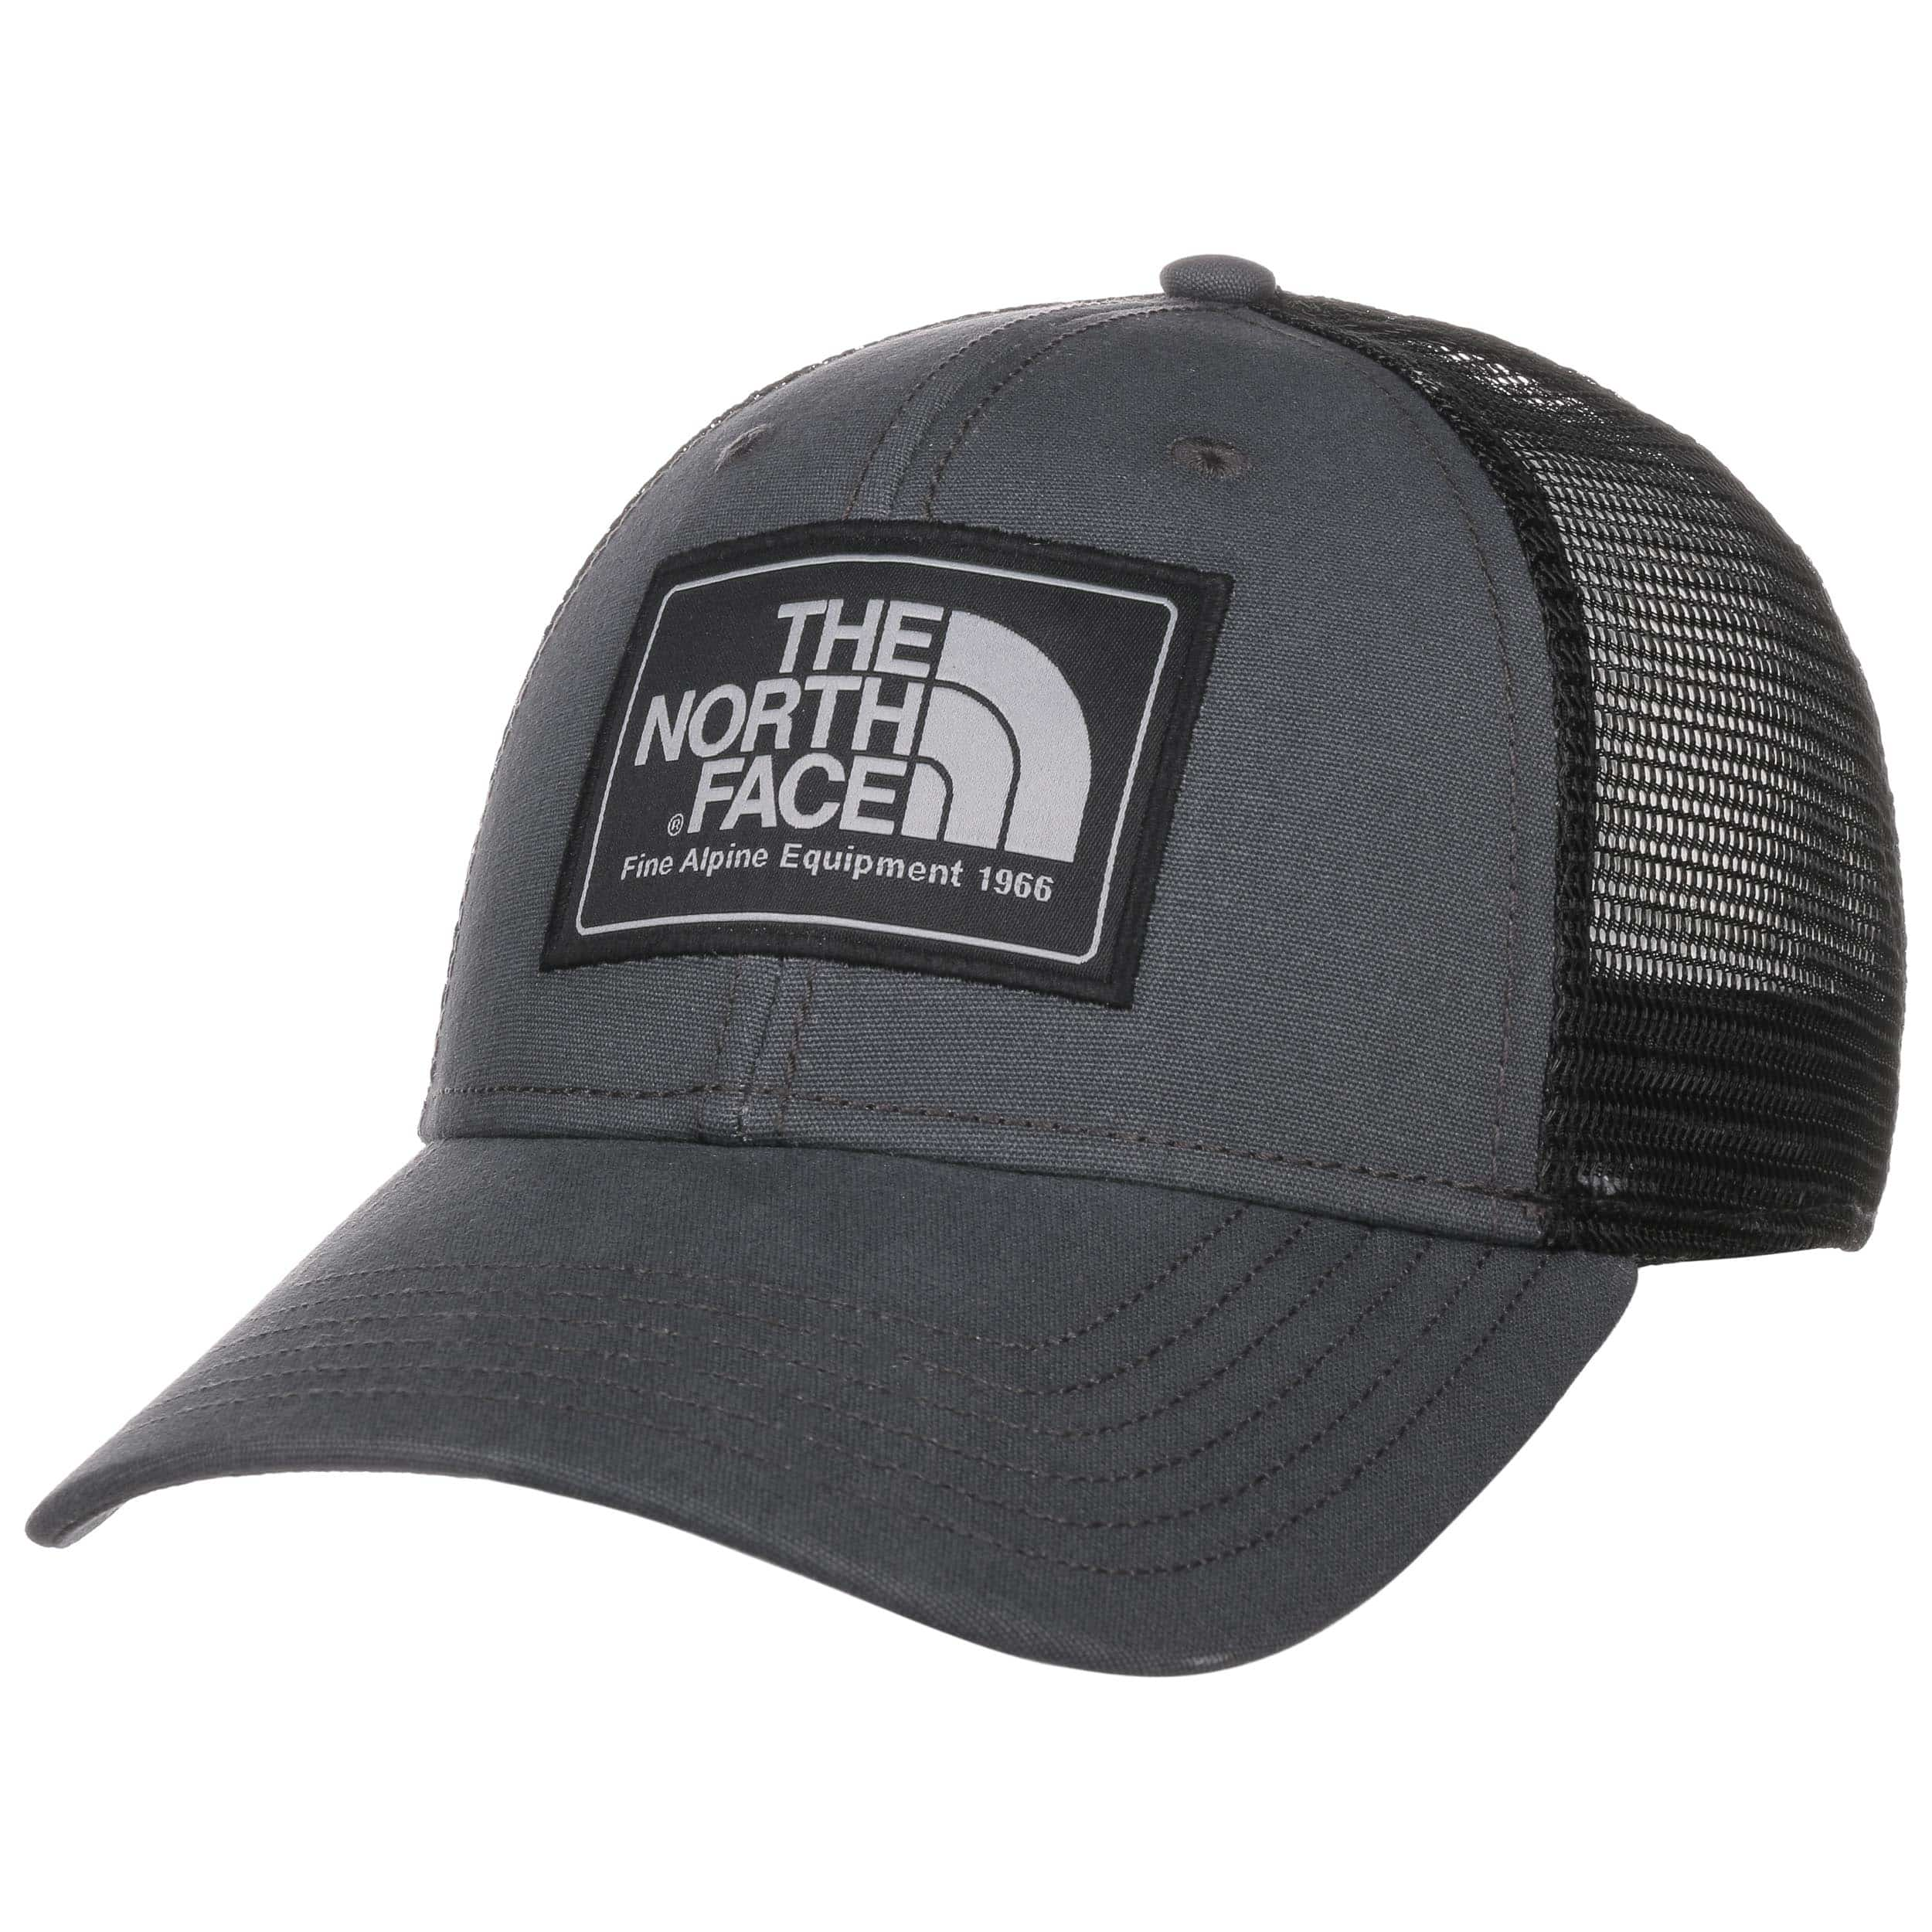 832f485259075 ... Mudder Trucker Cap by The North Face - grey 5 ...